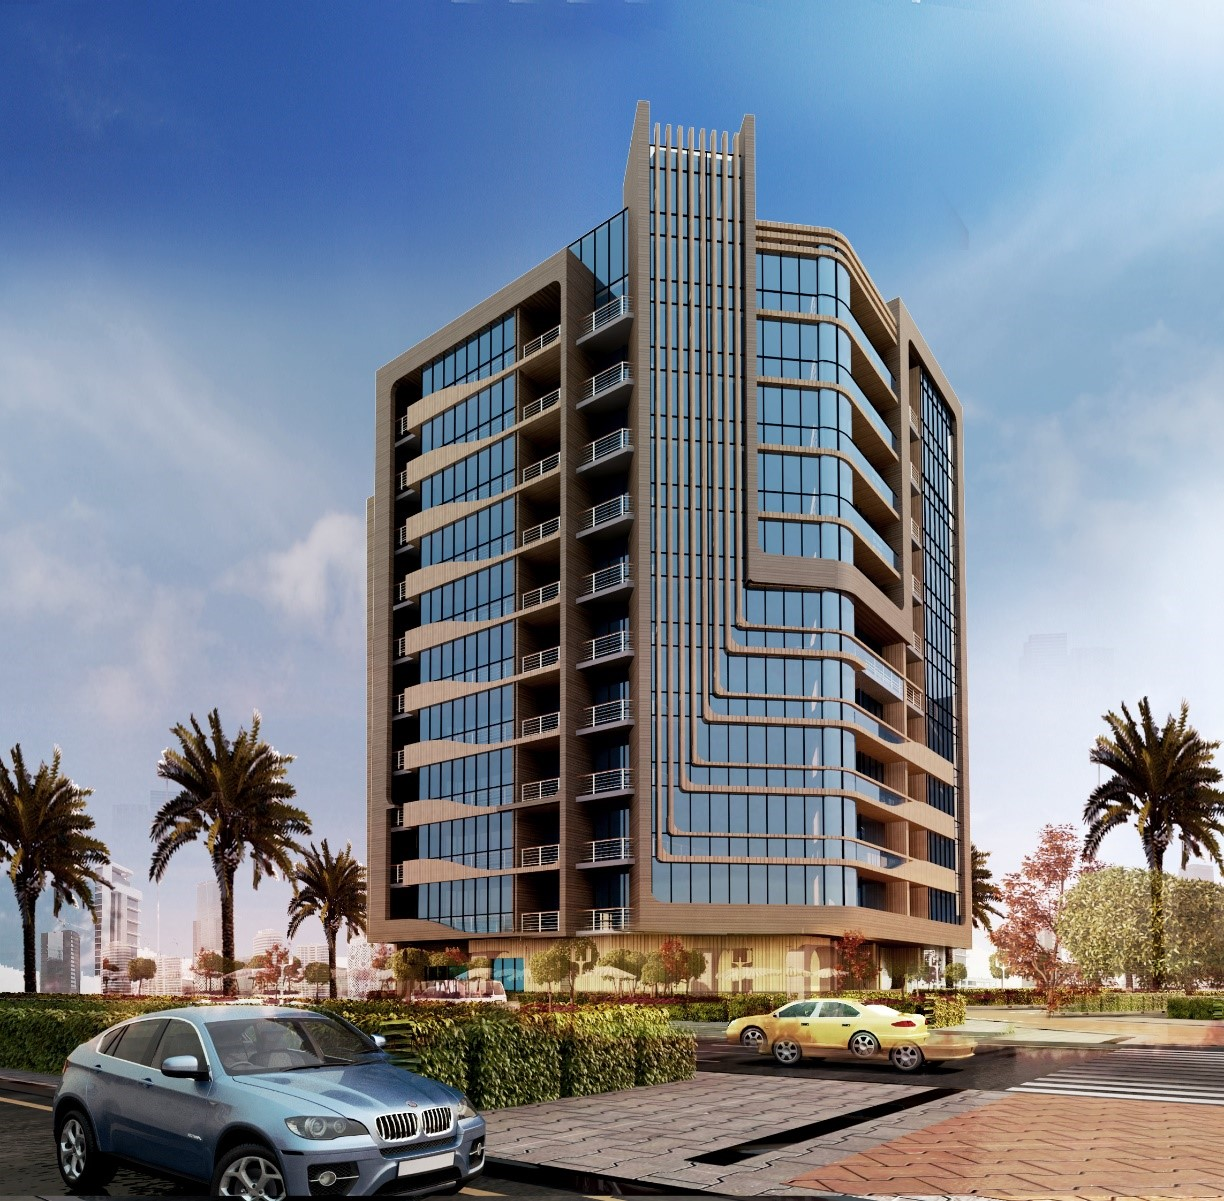 c B + G + 10 Typical Floor + R Residential Building Nadd Al Hamar, Dubai-UAE